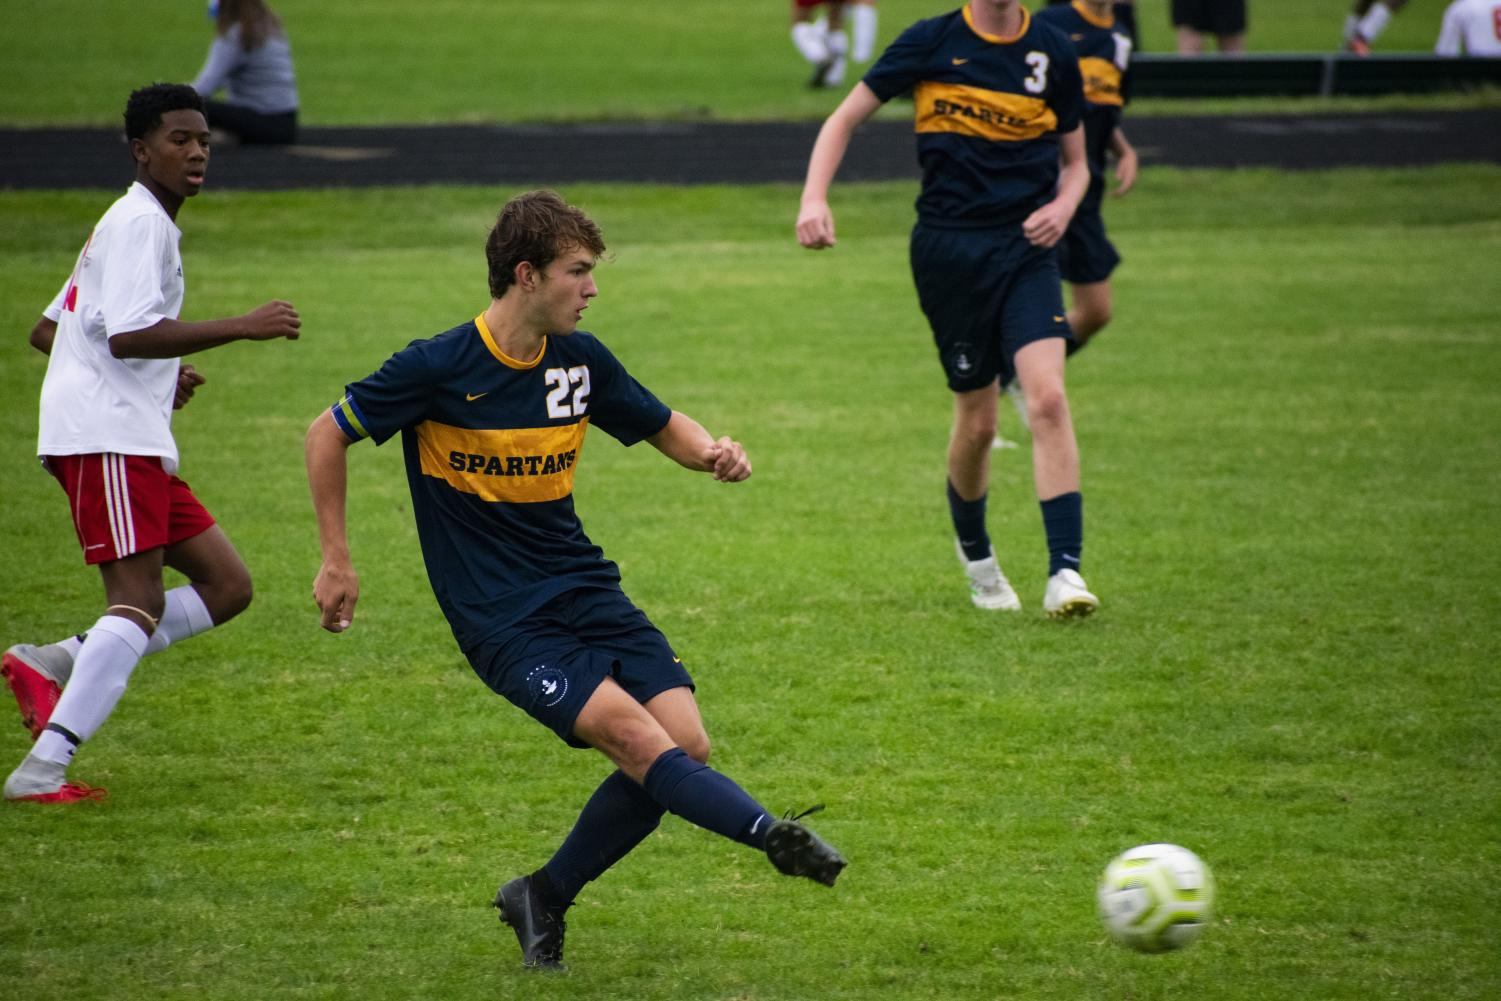 Boys soccer captain Thomas Bagnoli clearing the ball.  Photo Submitted by Galen Juliusson